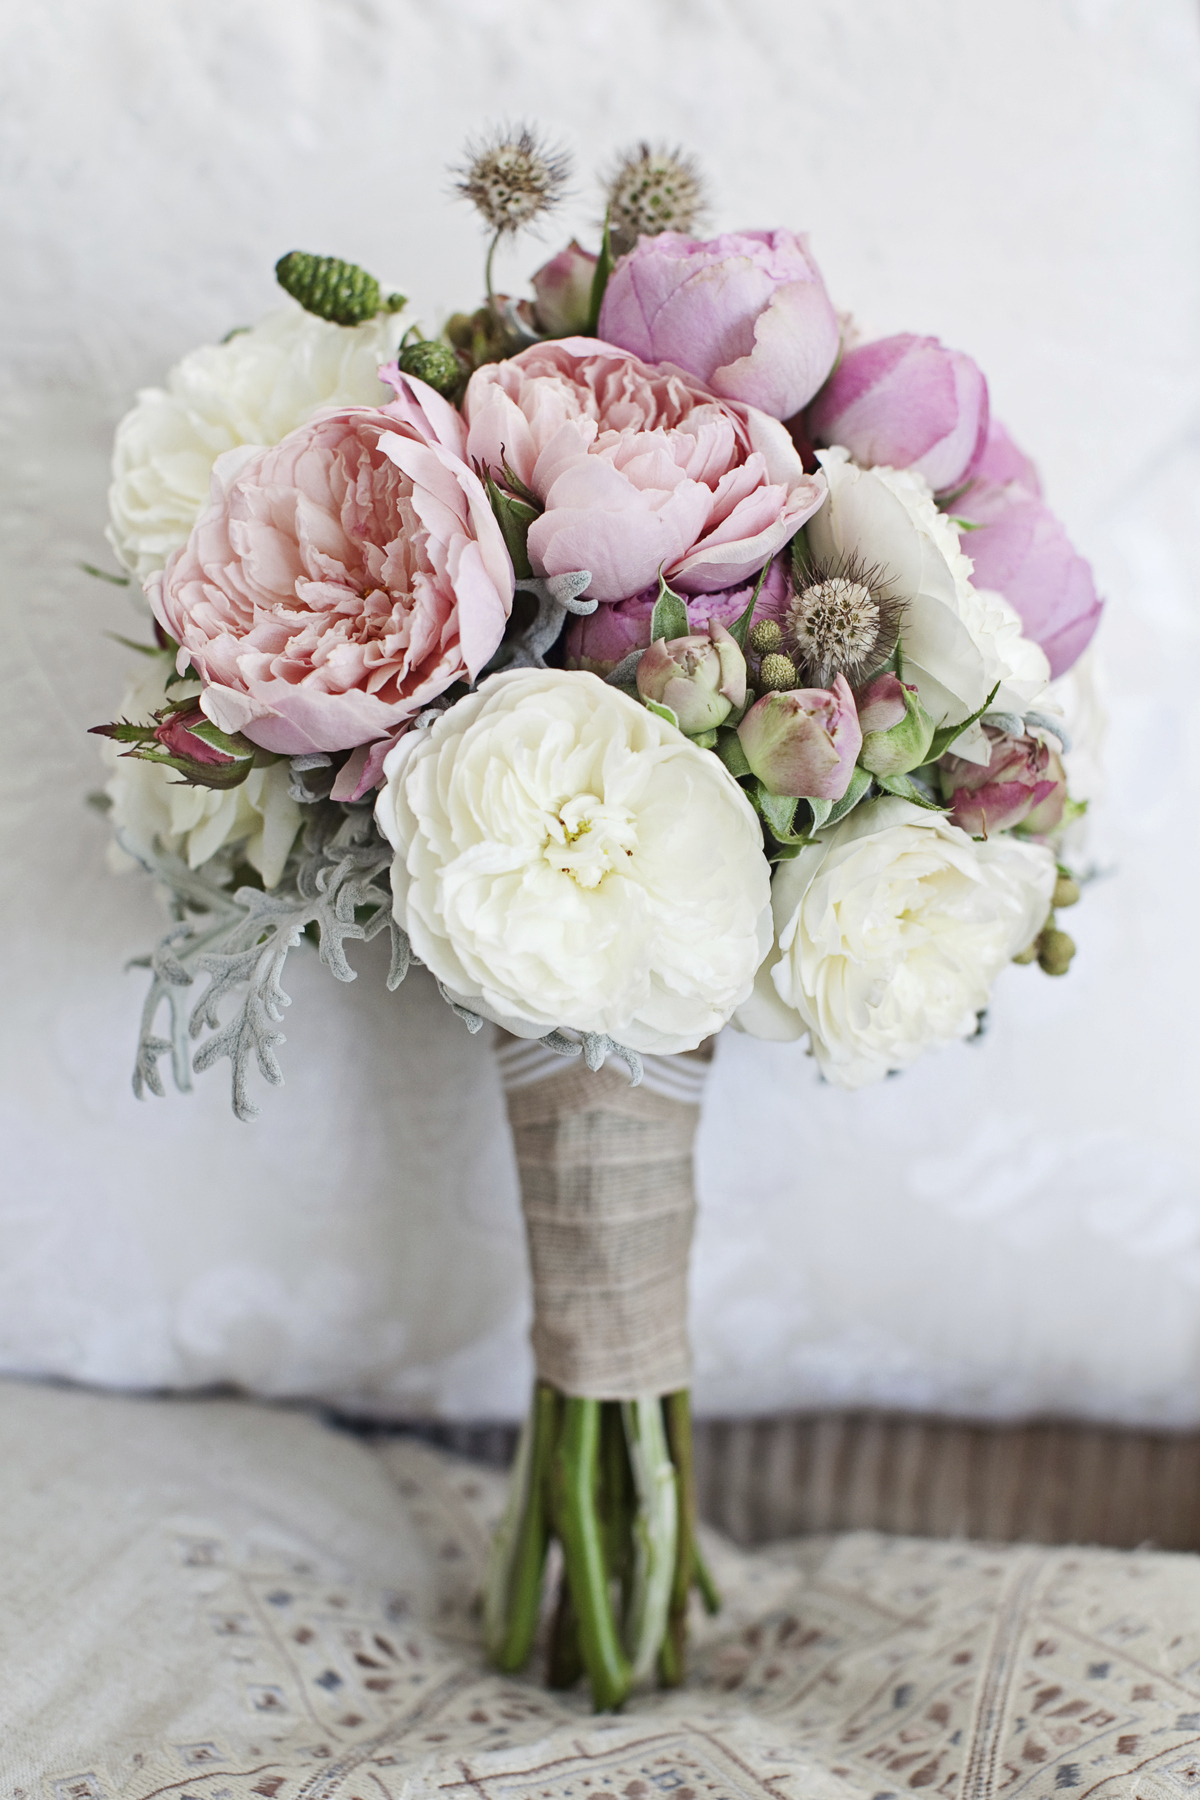 The Top Wedding Trends for 2017 Soft Petal Blooms